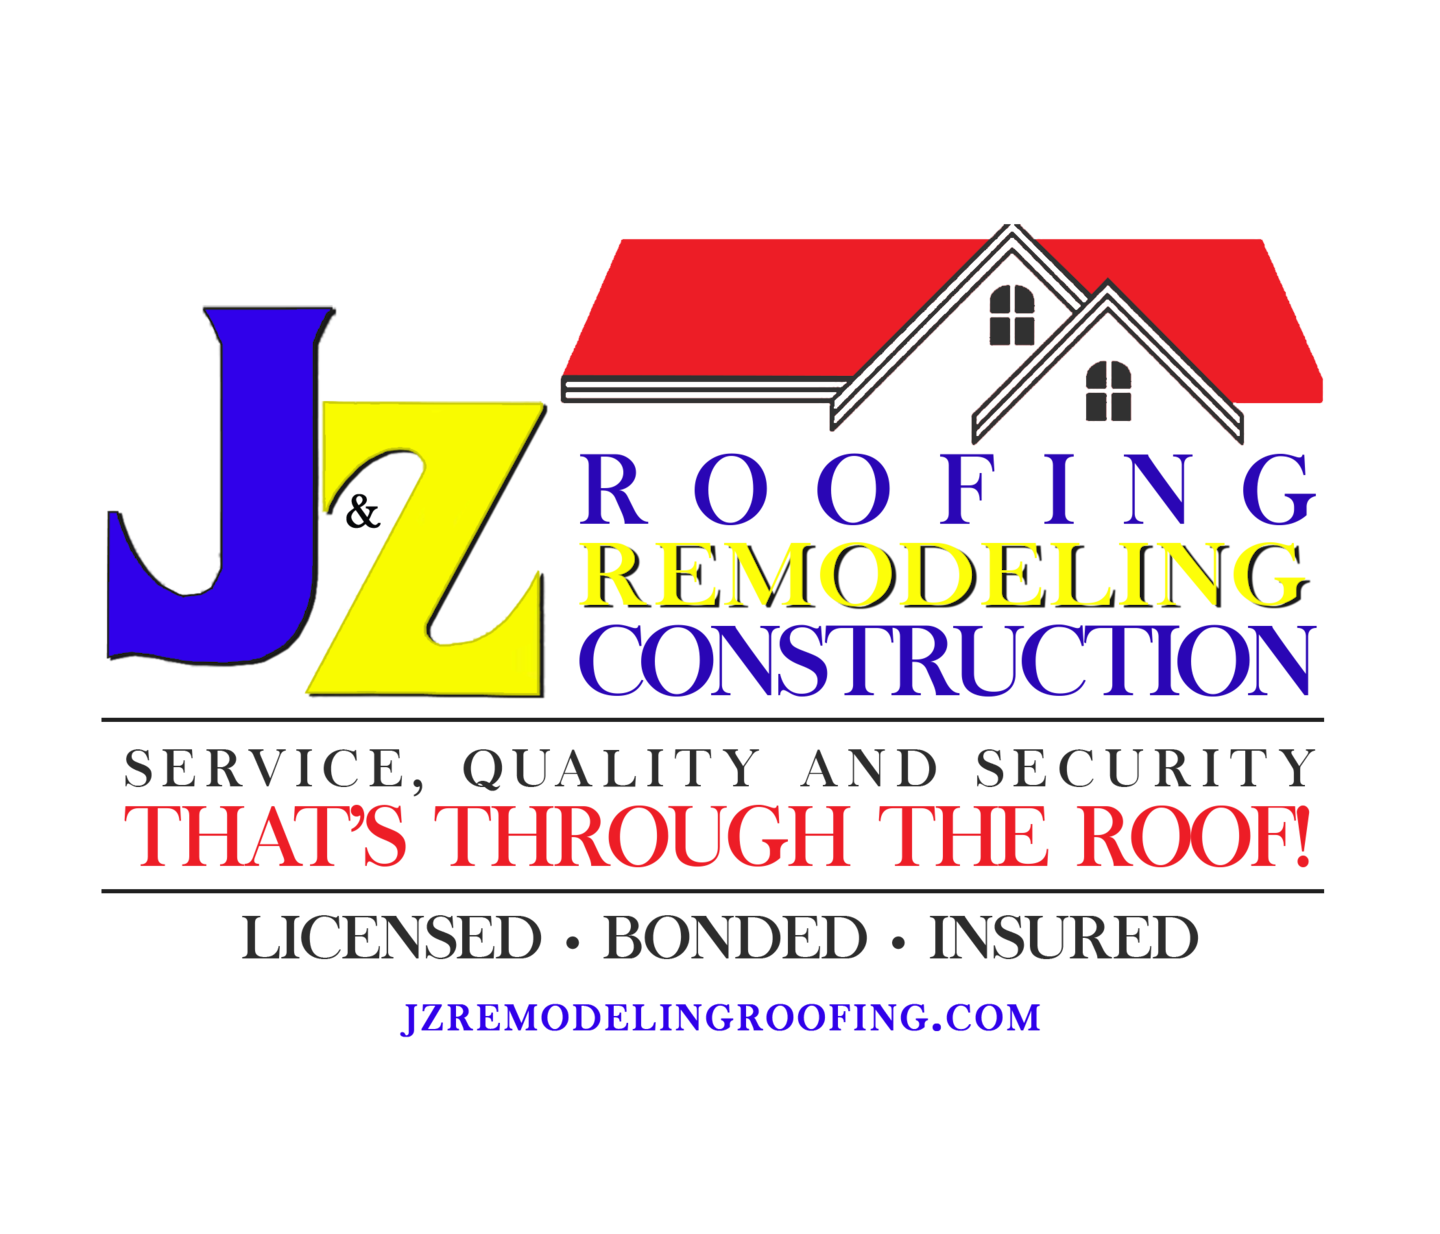 J & Z Roofing Remodeling Construction